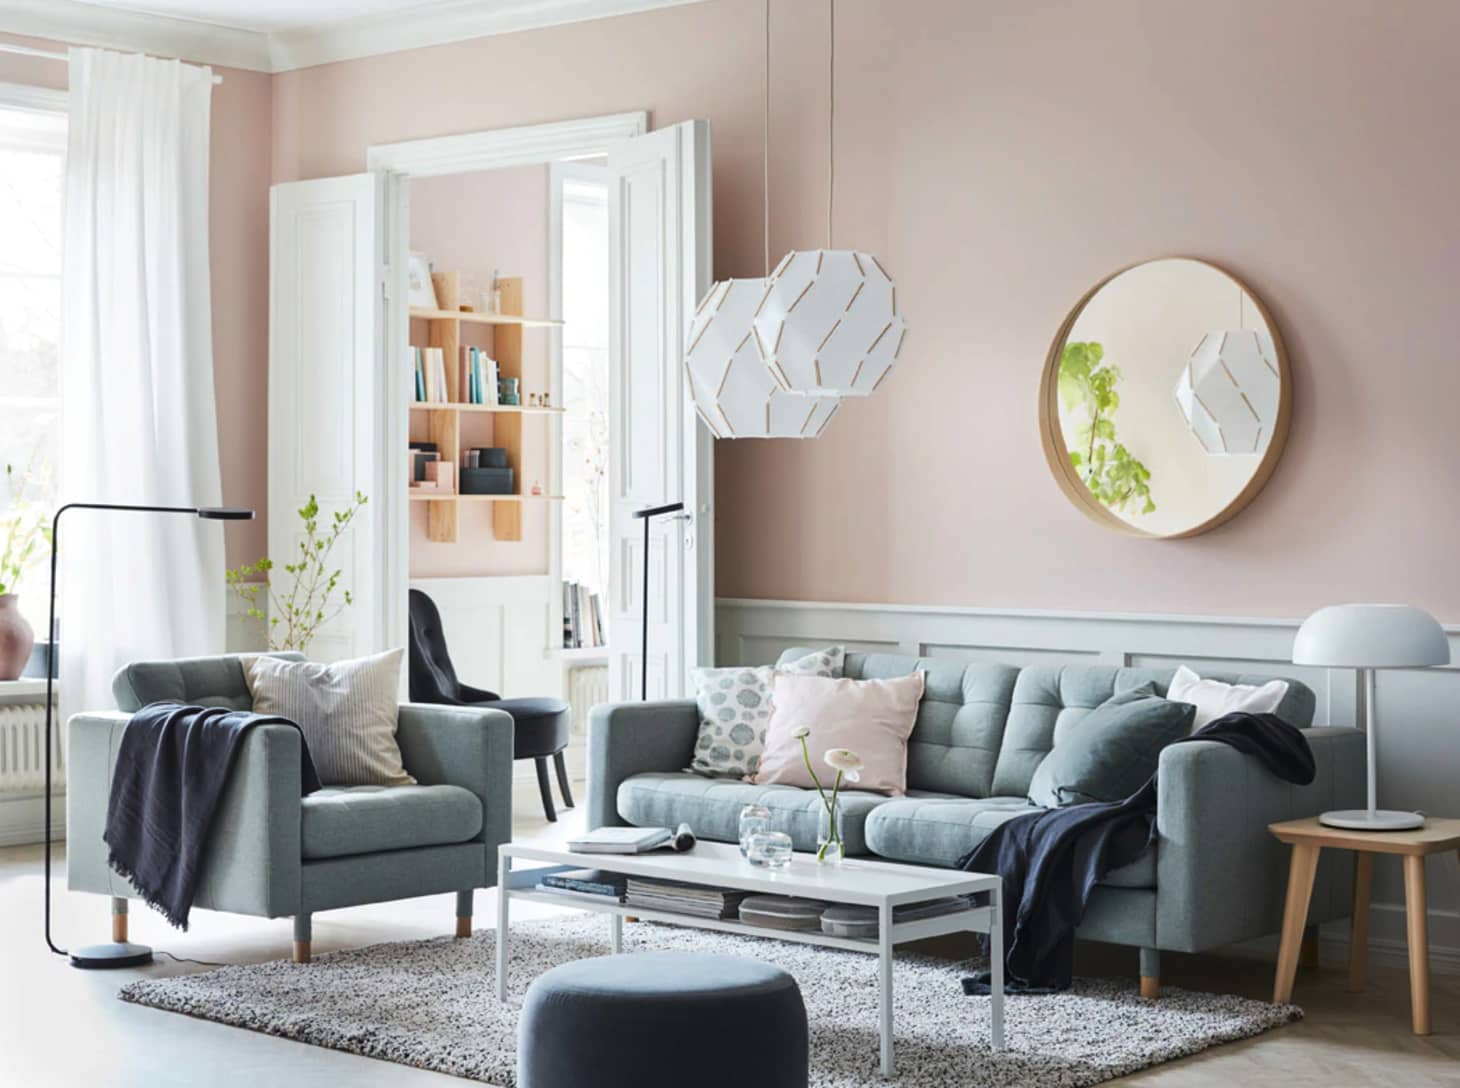 Ikea Living Room >> Colorful Living Room Design Ideas To Steal From Ikea